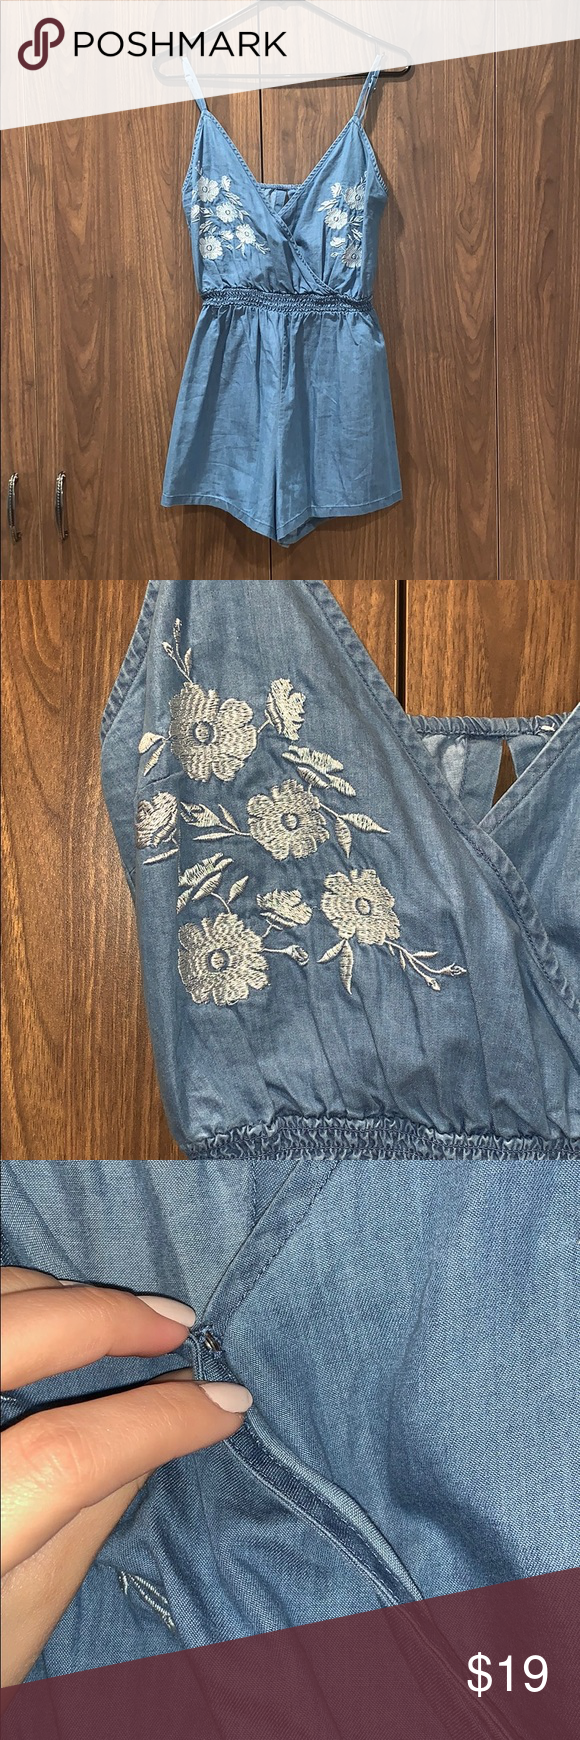 14fb3eed75bb Forever 21 Blue Chambray Floral Embroidered Romper Has a button in the  front to hold the neckline together. Has a surplice looks back has a cutout.